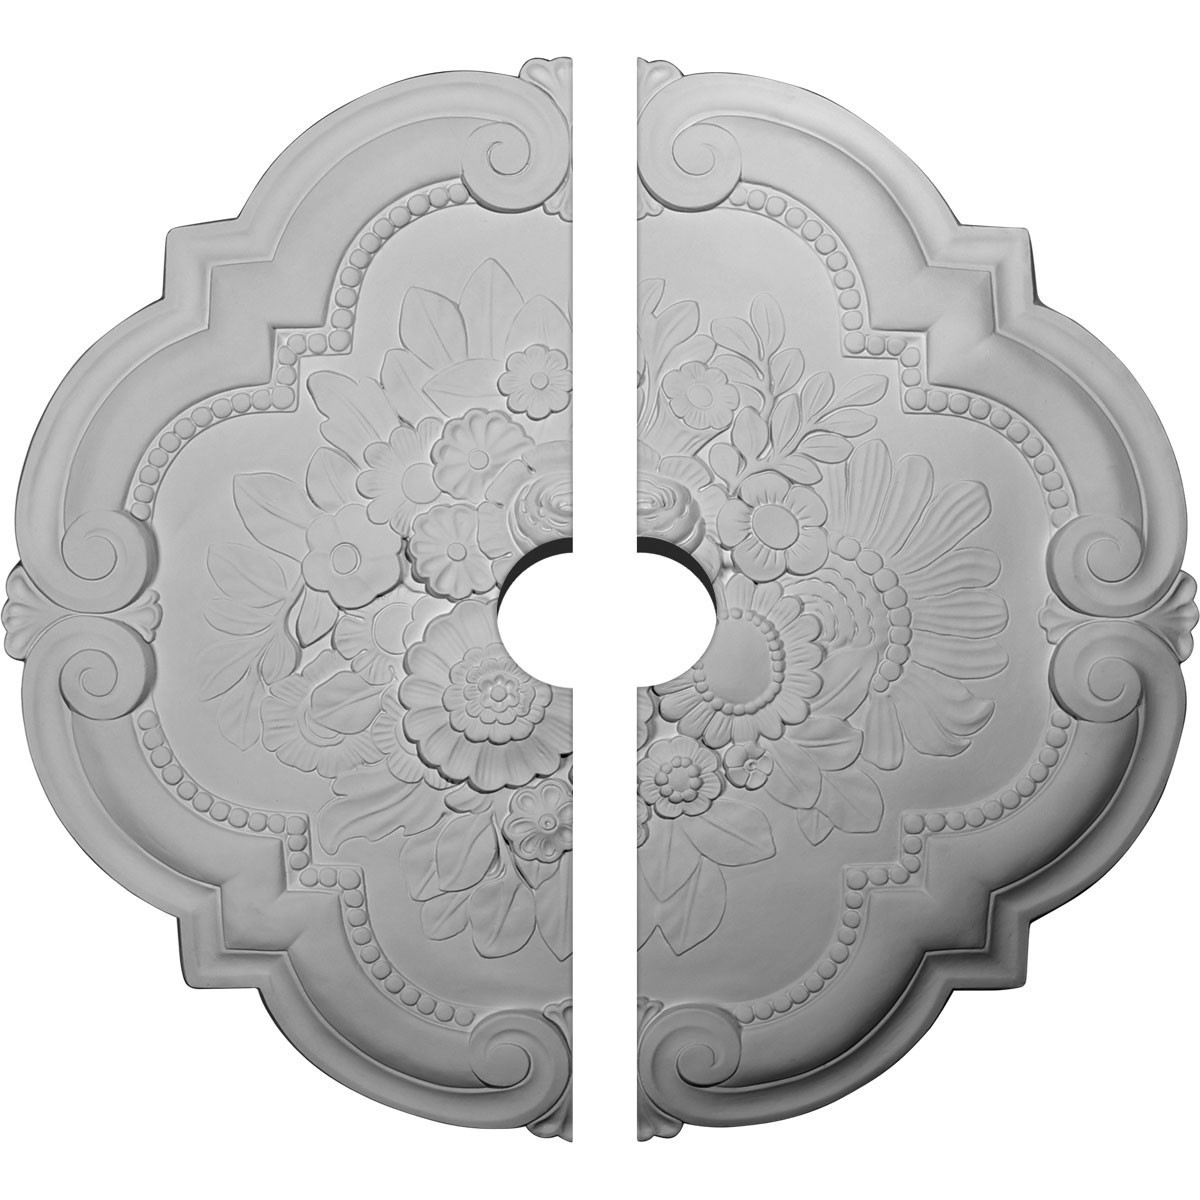 """EM-CM24VI2-03500 - 24 3/8""""OD x 3 1/2""""ID x 1""""P Victorian Ceiling Medallion, Two Piece (Fits Canopies up to 3 1/2"""")"""